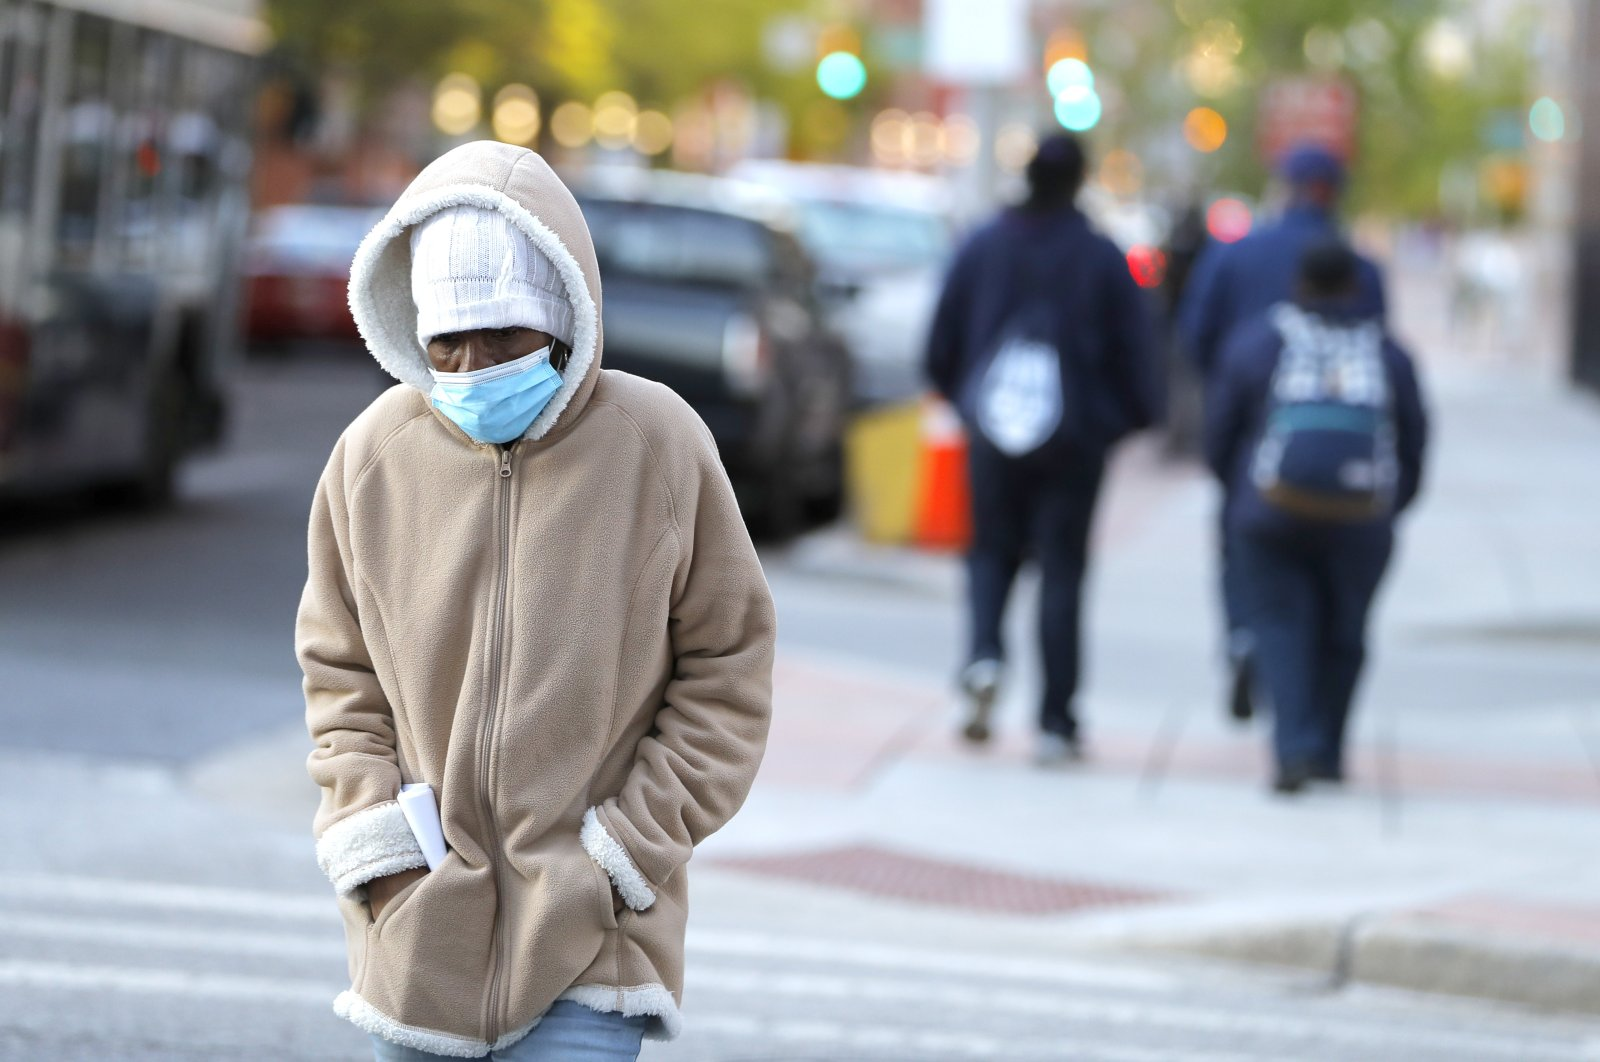 A person wears a face mask to protect from the coronavirus during a cold morning, Wednesday, April 22, 2020, in Baltimore. (AP Photo)